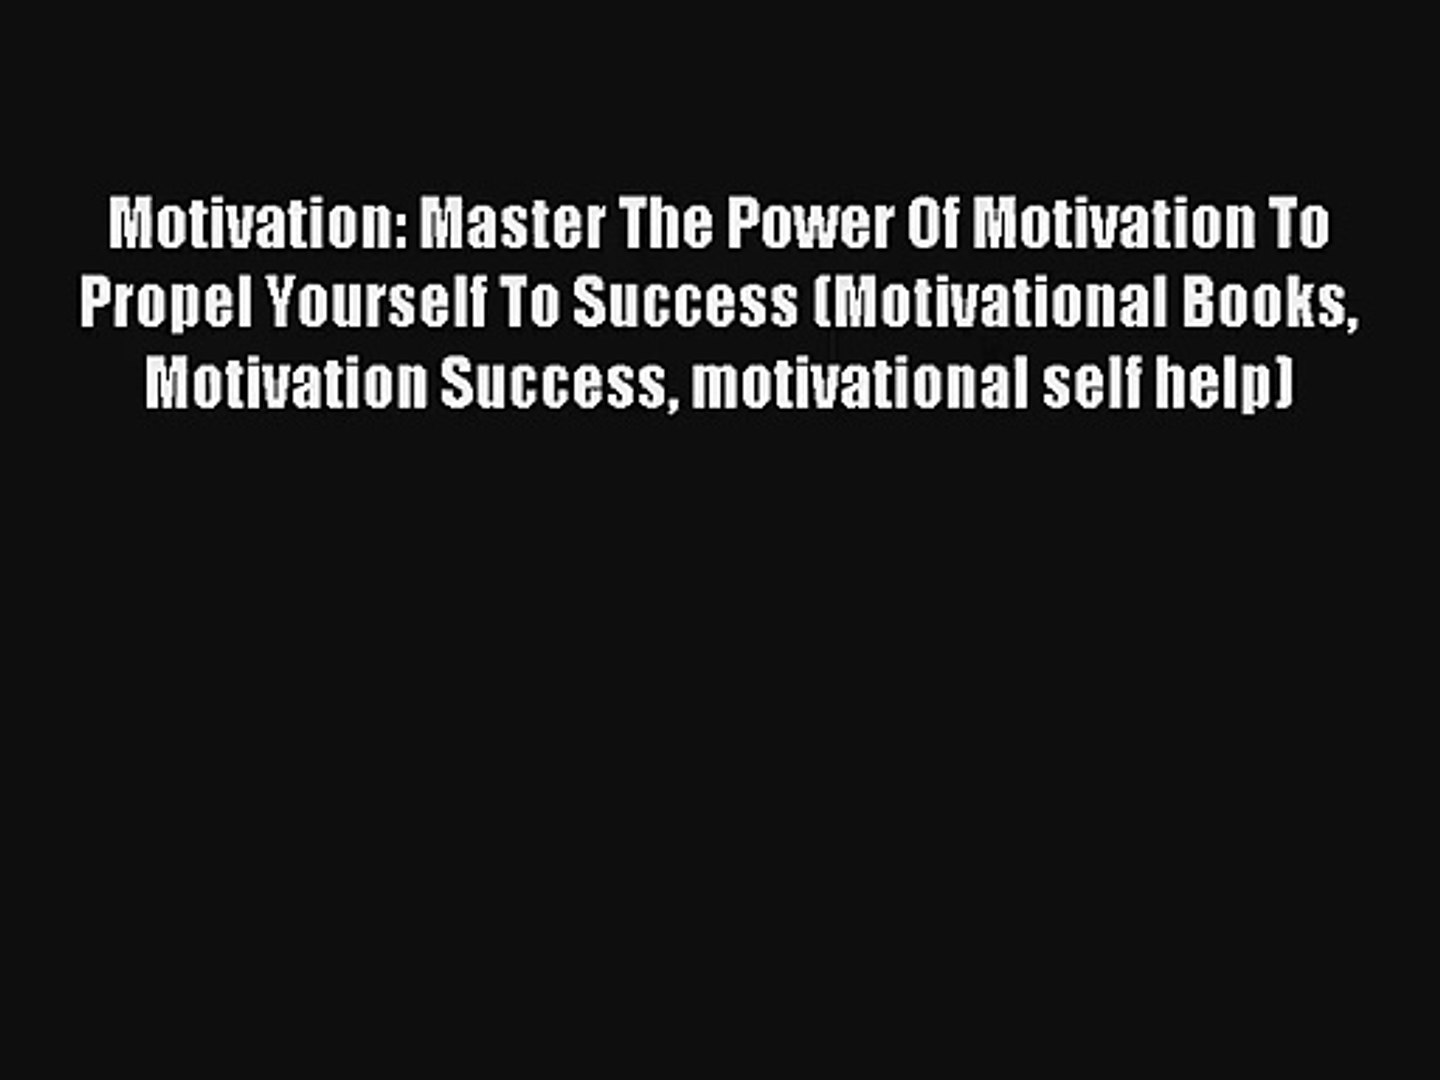 Motivation: Master The Power Of Motivation To Propel Yourself To Success (Motivational Books